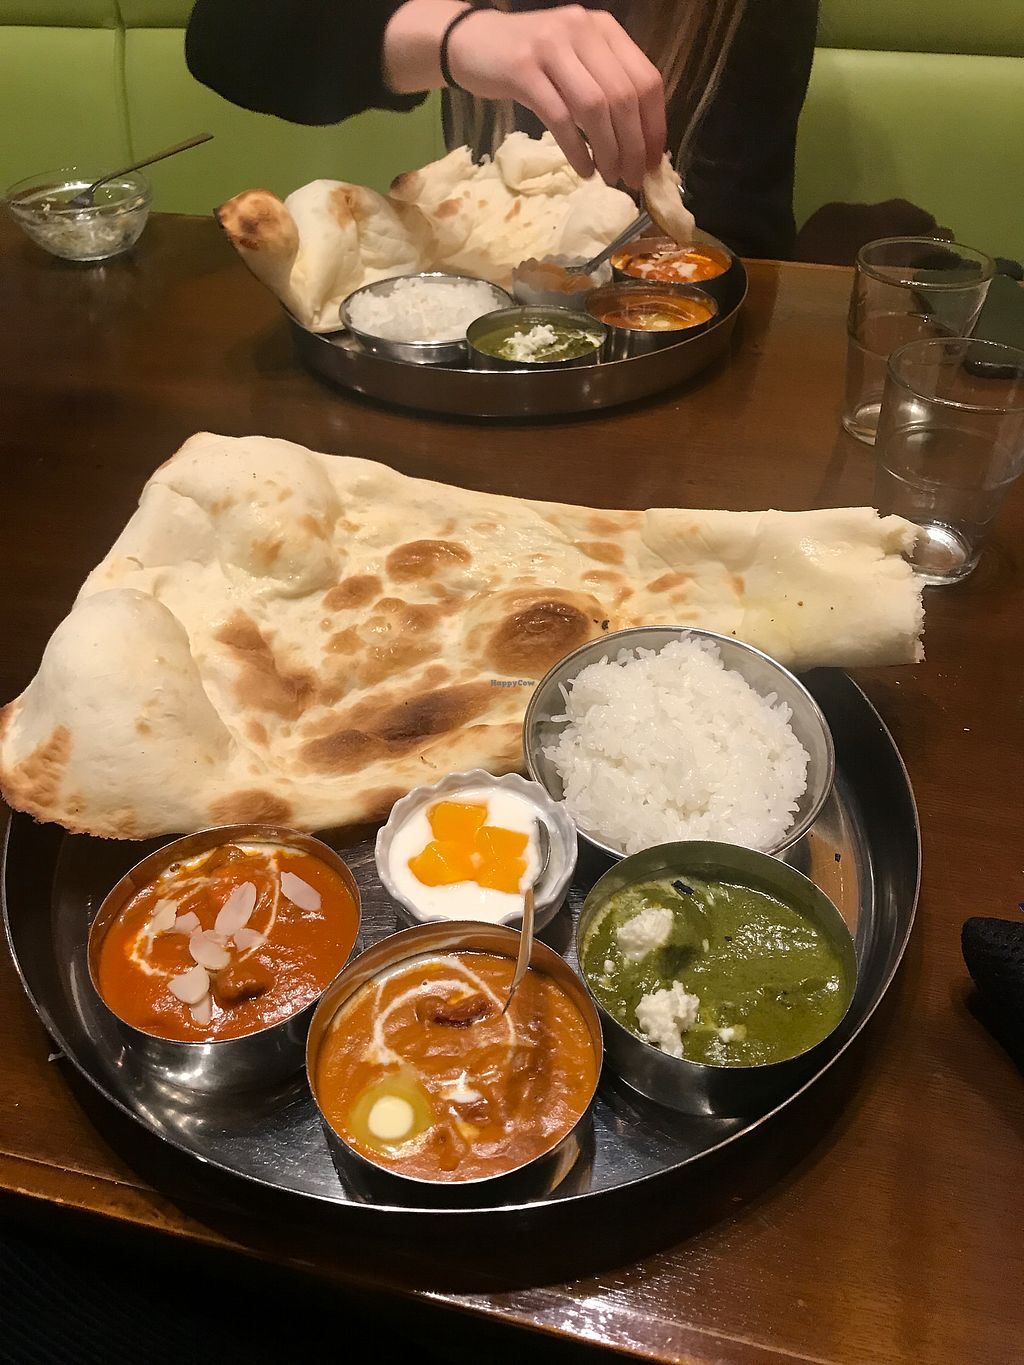 """Photo of Namaste Shokudou  by <a href=""""/members/profile/hbad"""">hbad</a> <br/>Lunch menu - 3 vegetable curries, with naan and rice refills and drink 1050JPY <br/> November 17, 2017  - <a href='/contact/abuse/image/39379/326335'>Report</a>"""